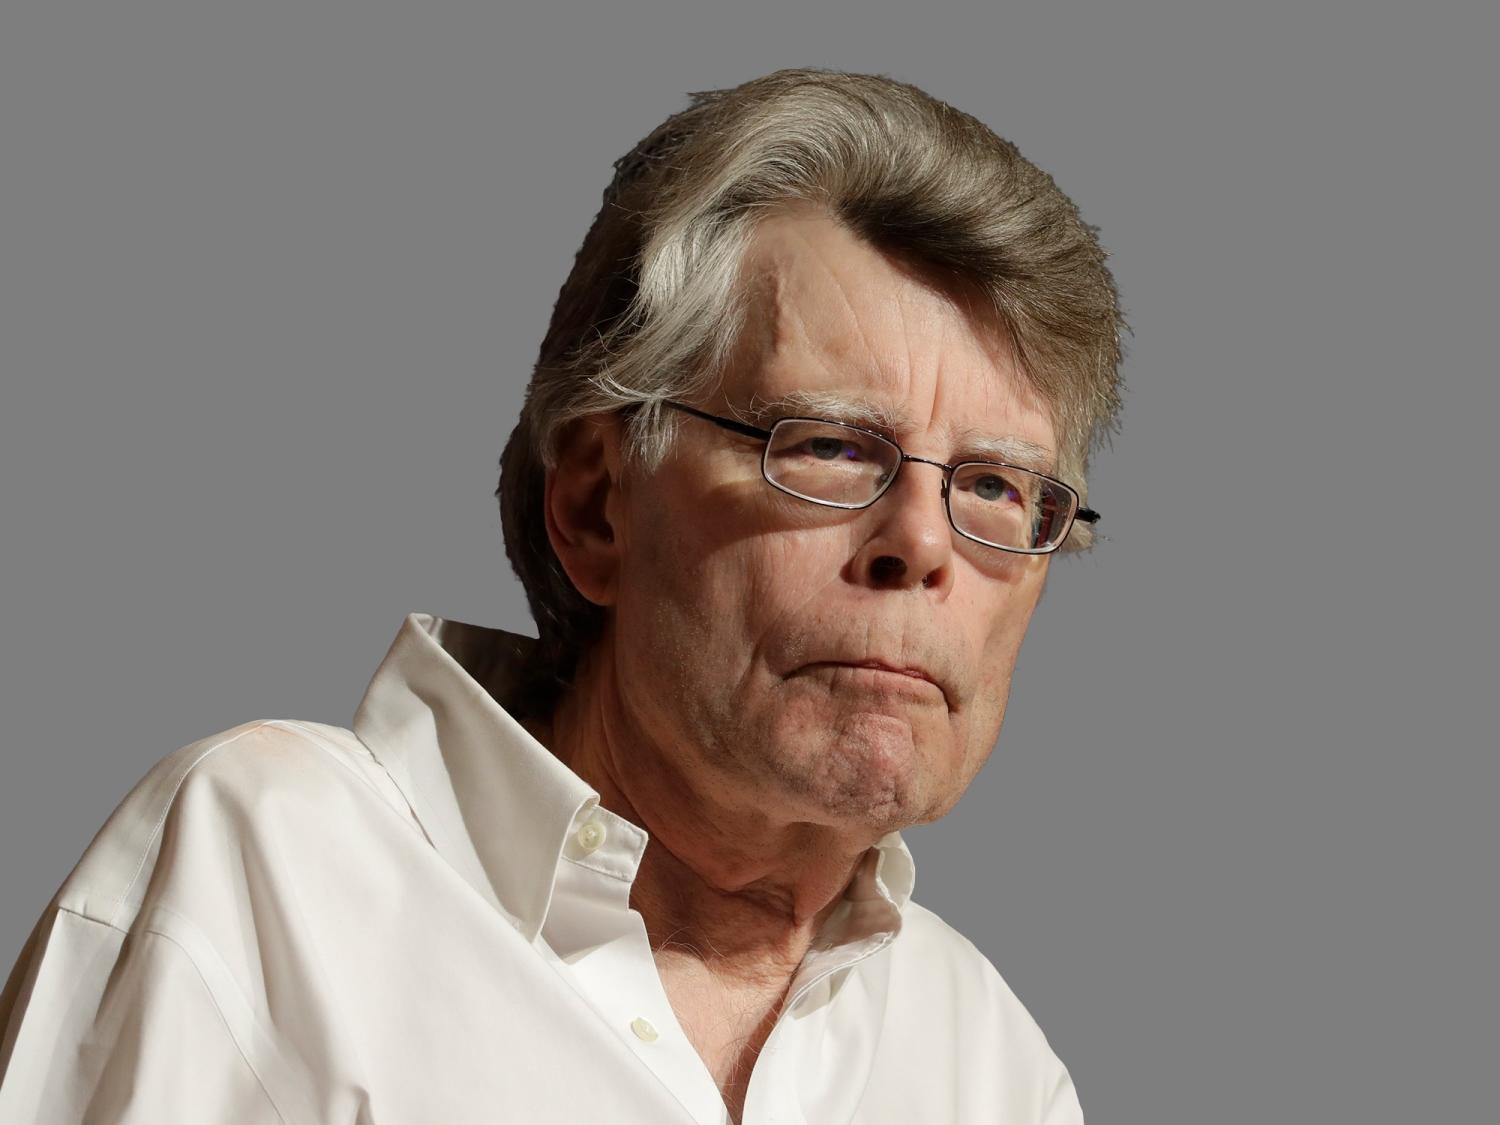 Stephen King says the Oscars are 'rigged in favour of white people'